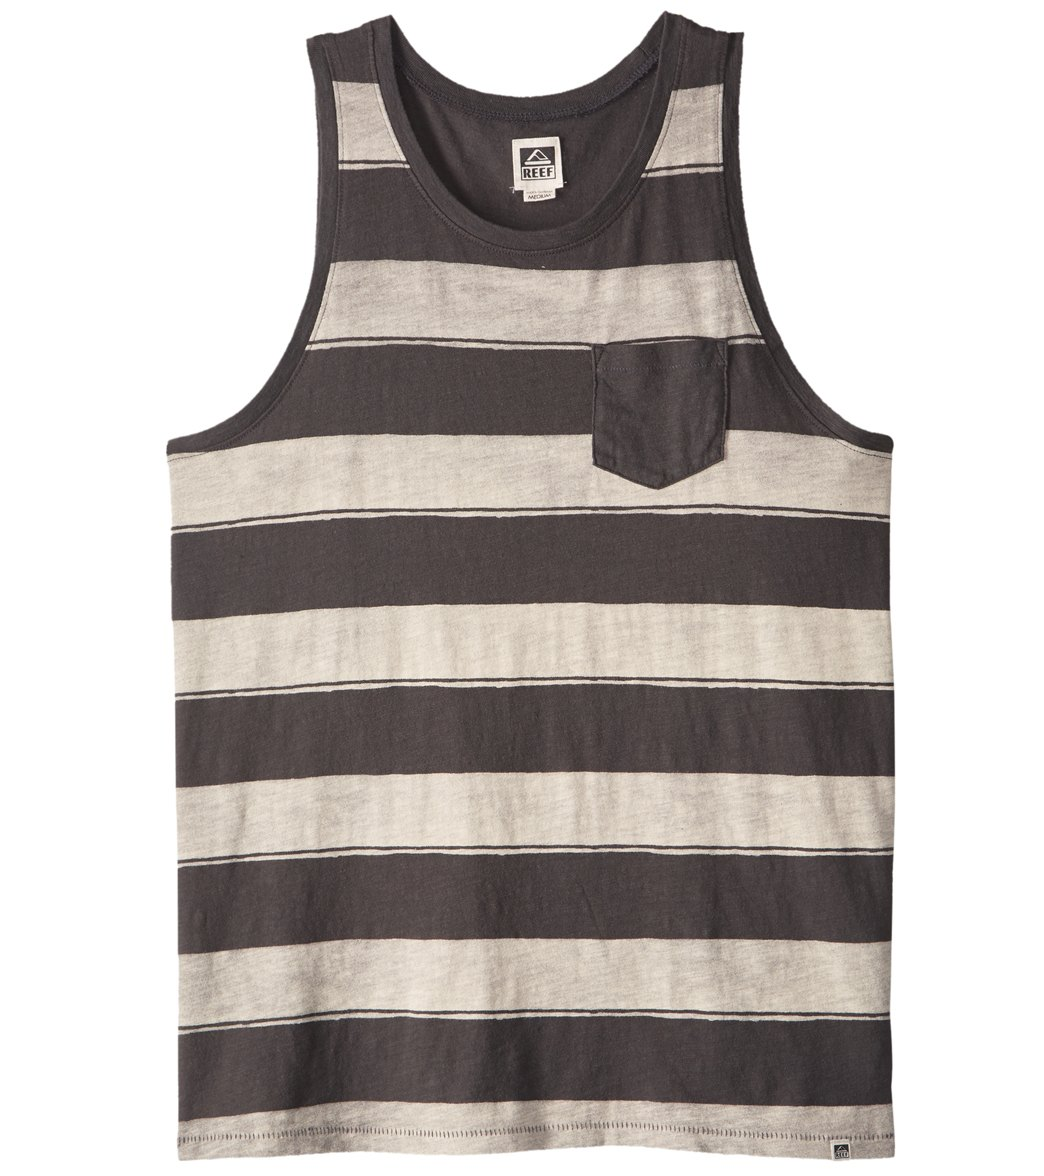 REEF STRIPE IT TANK